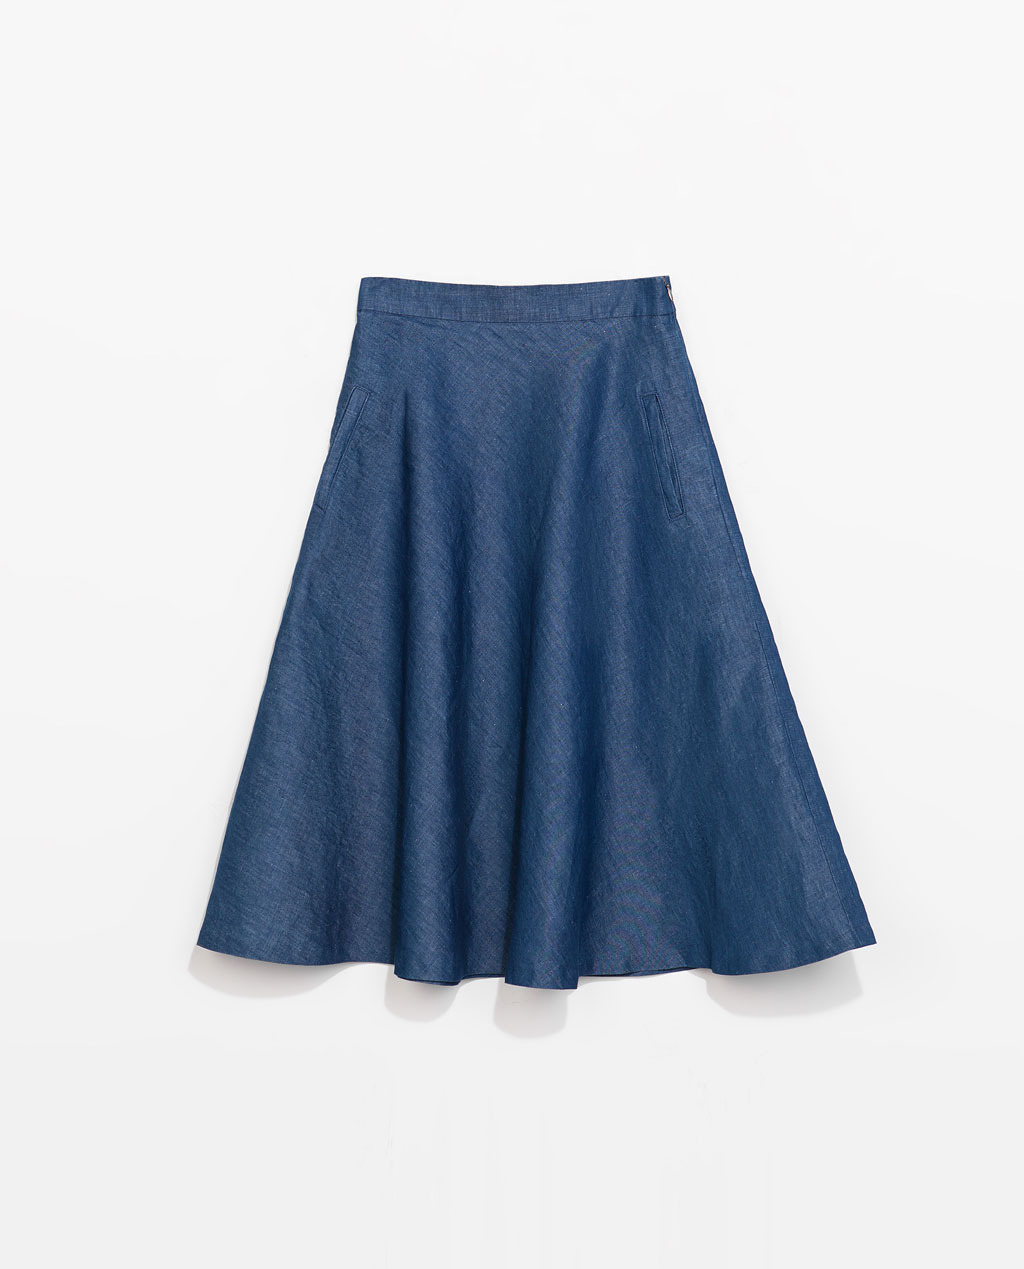 Denim Midi Skirt - pattern: plain; style: full/prom skirt; fit: loose/voluminous; waist: high rise; predominant colour: denim; occasions: casual, work, creative work; length: on the knee; fibres: cotton - mix; hip detail: soft pleats at hip/draping at hip/flared at hip; texture group: denim; pattern type: fabric; season: s/s 2014